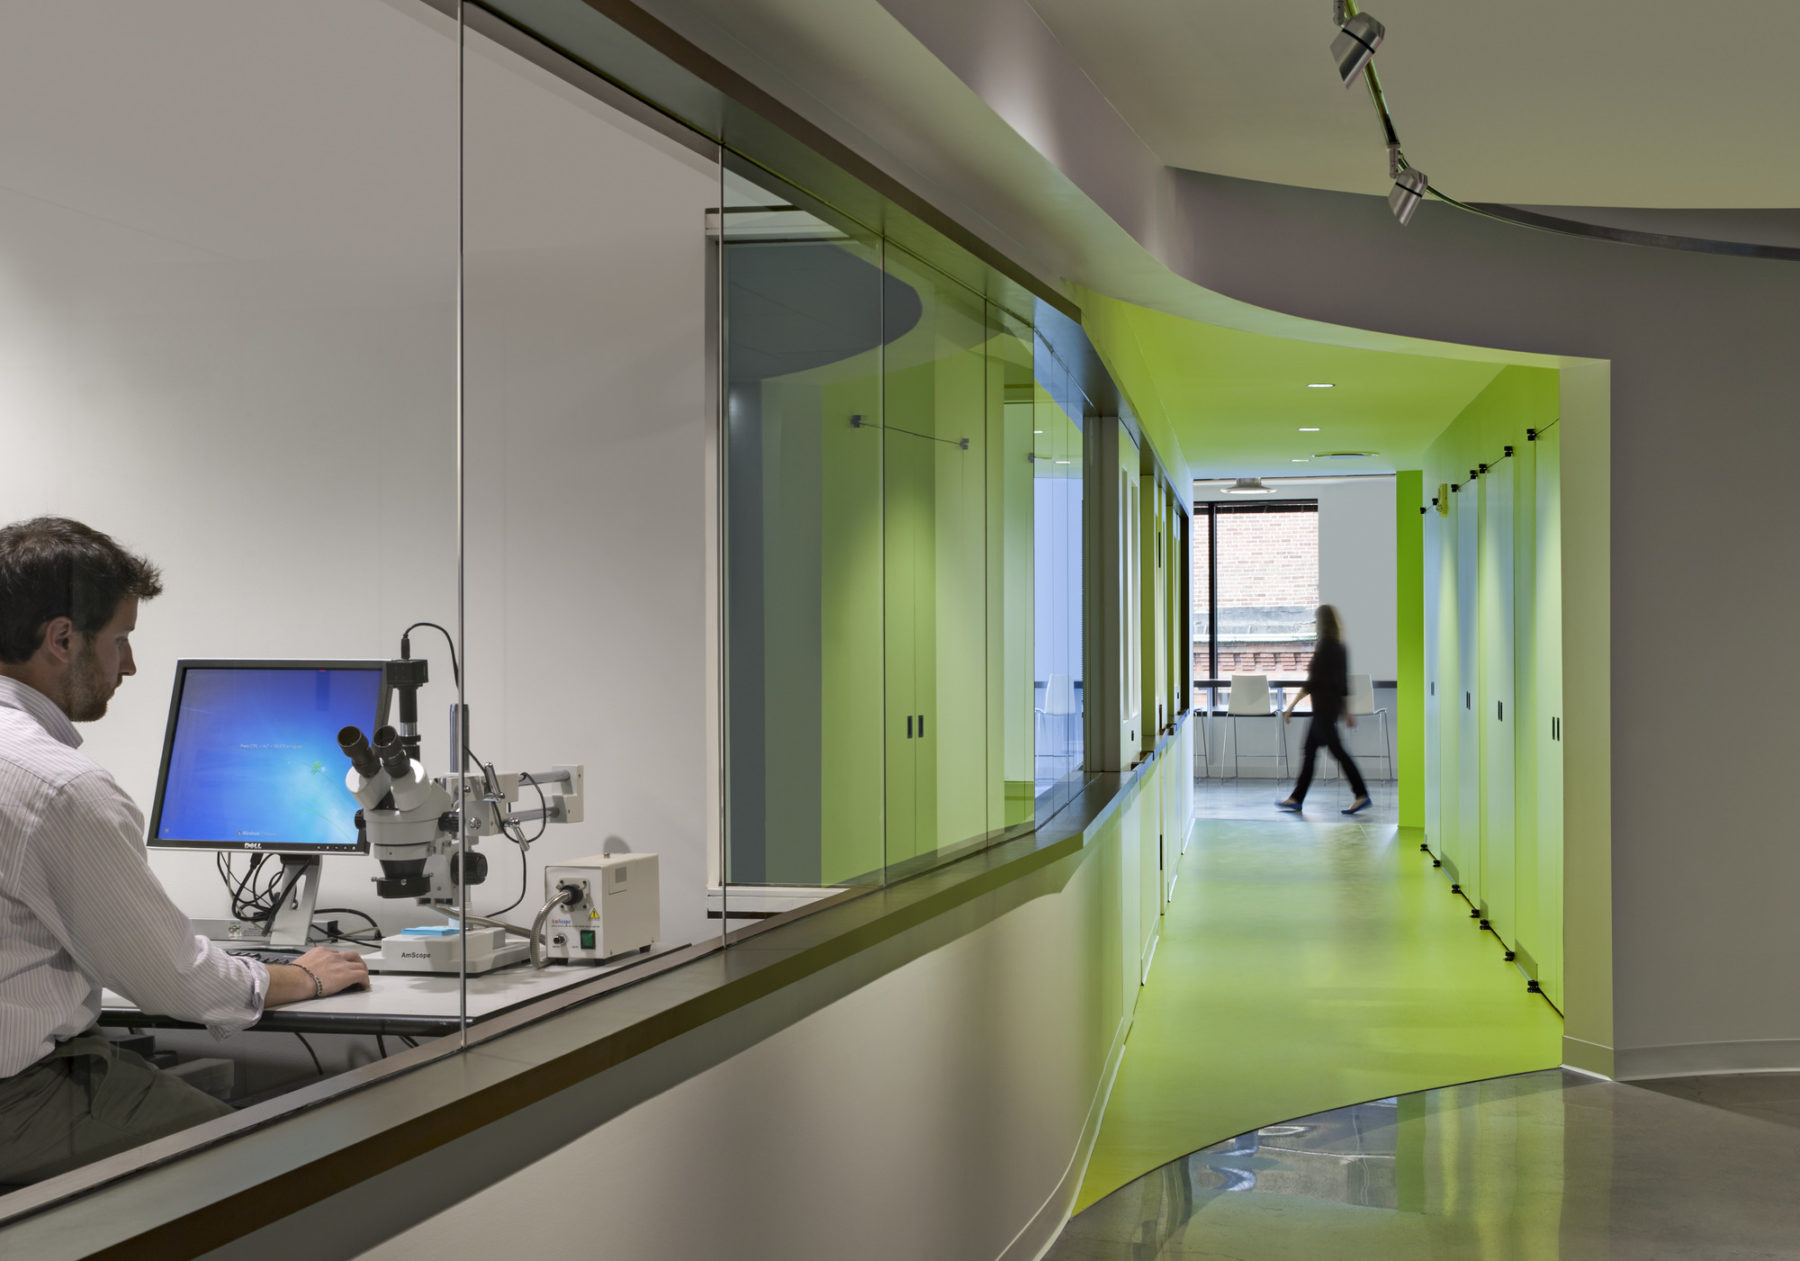 Man working on his desktop and microscope in a see-through office area towards the left, while we can look and see a greenly lit hallway on the right.